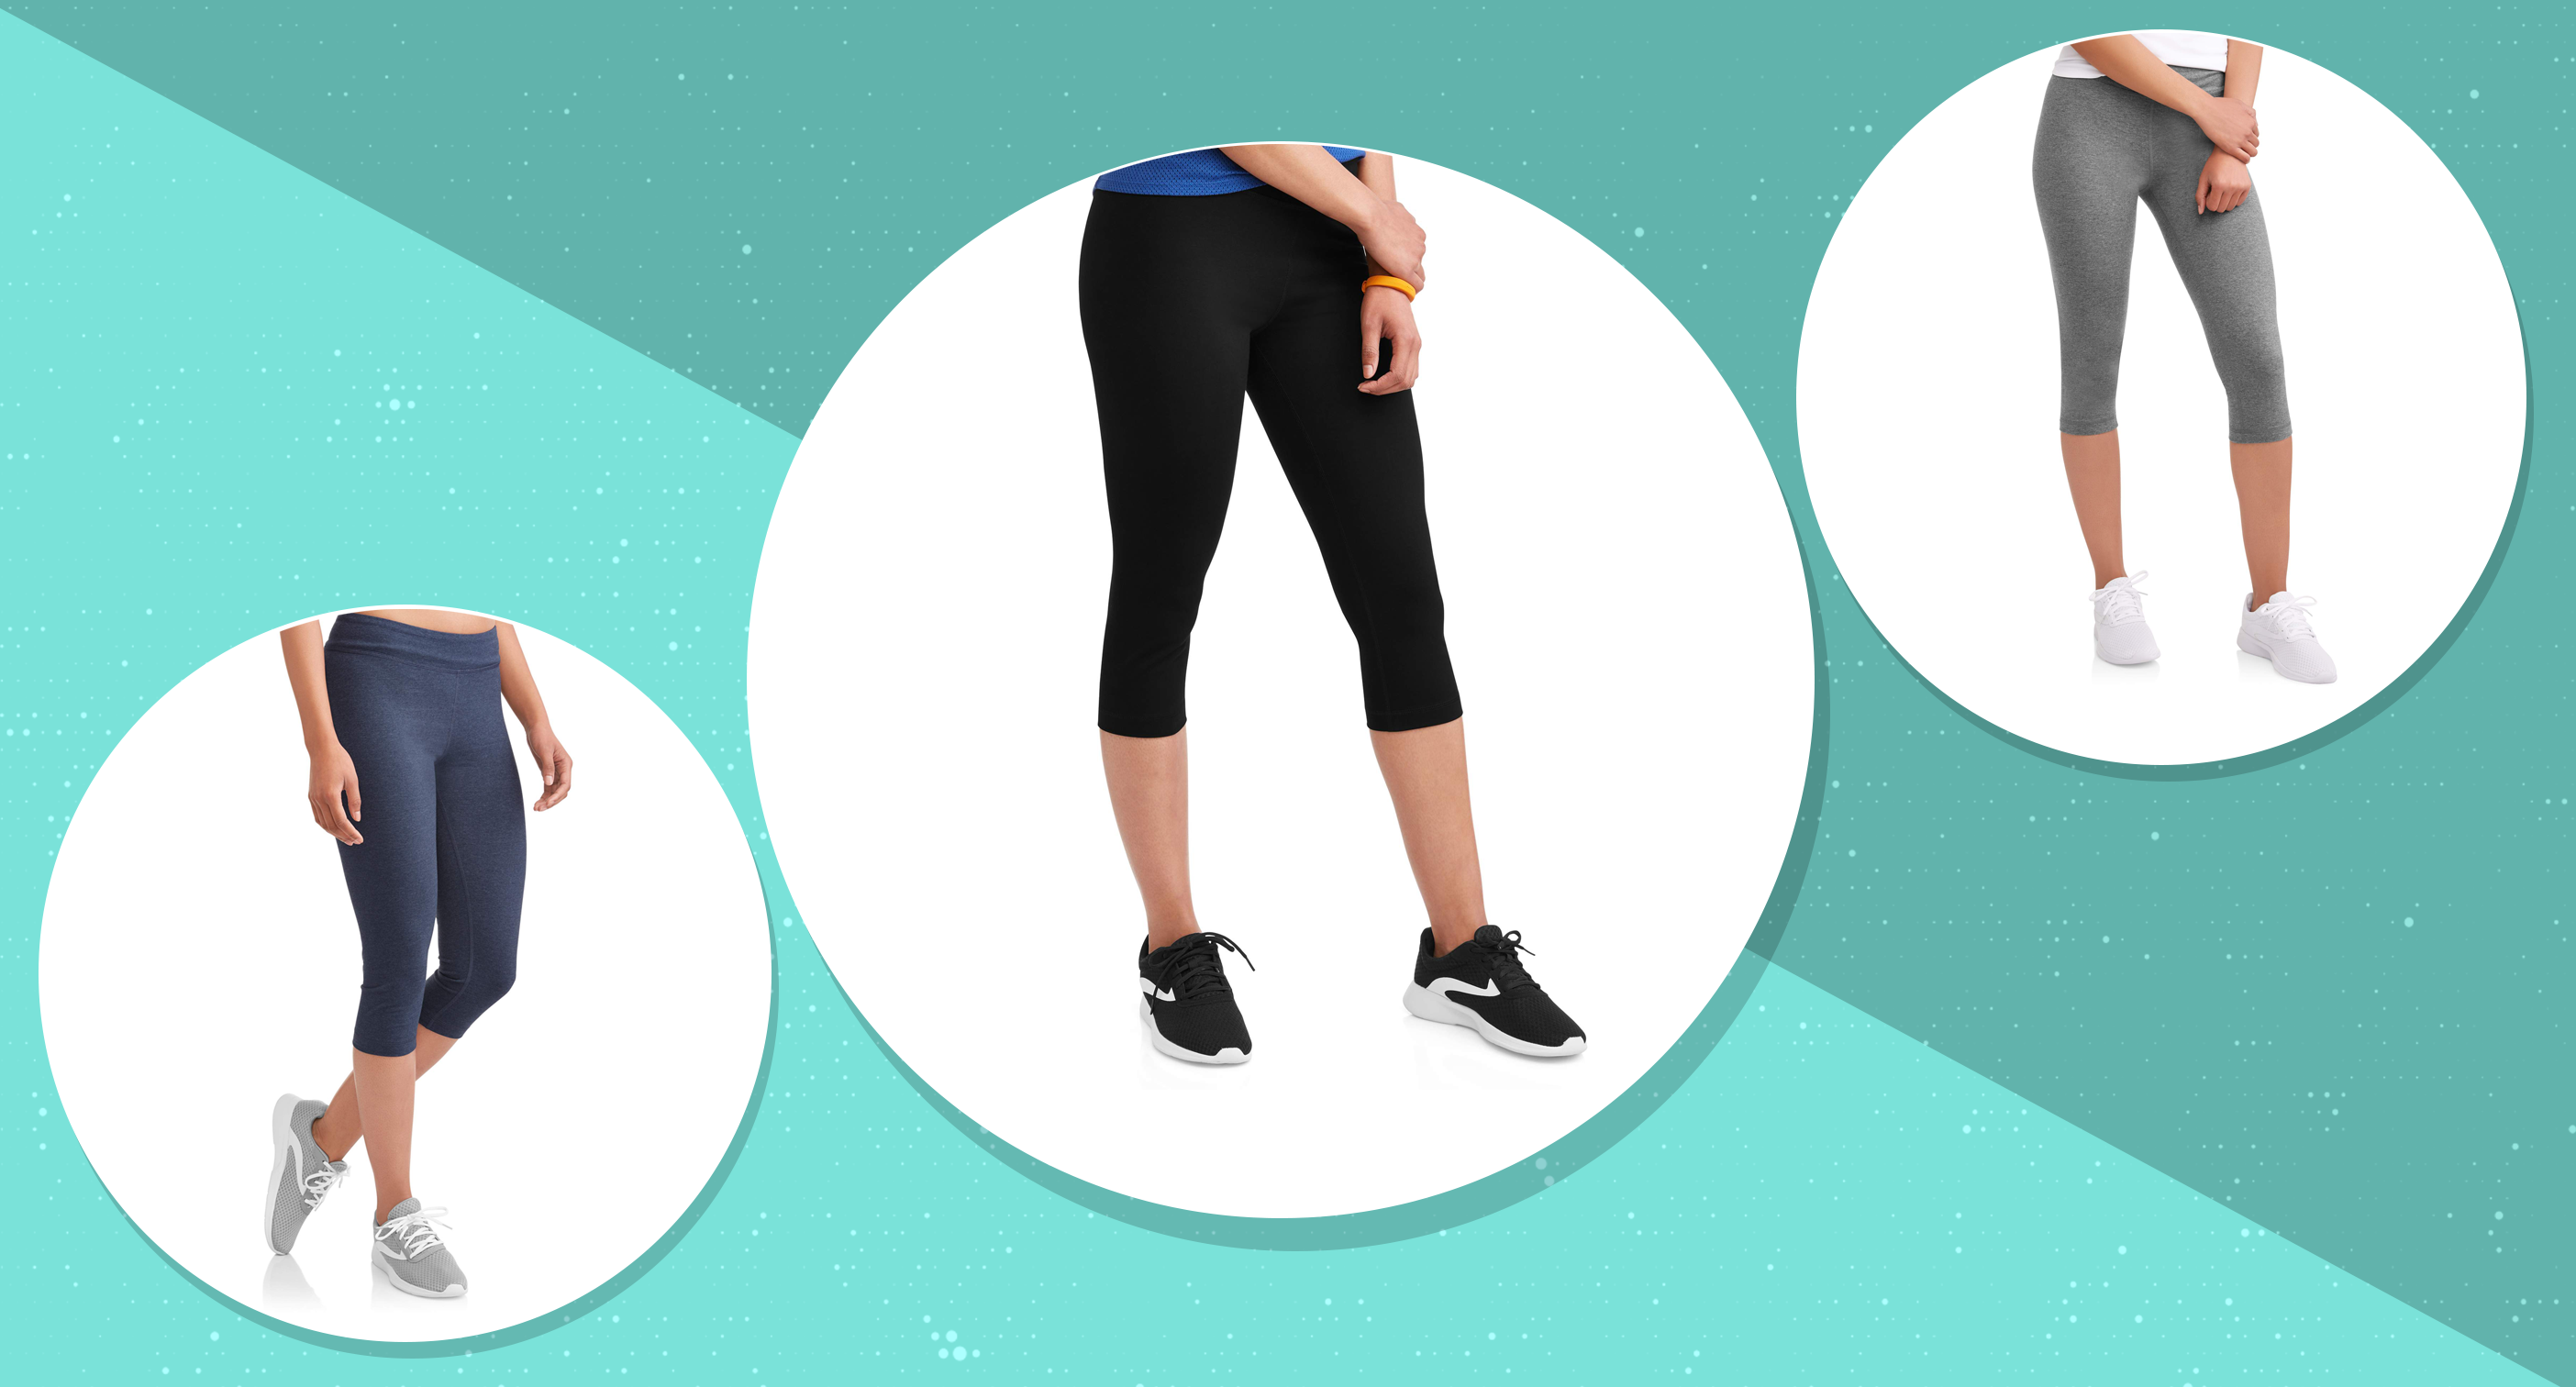 ea7fe25644 'Have LOVED these leggings since 2009!' Why thousands of women are obsessed  with these $7 leggings